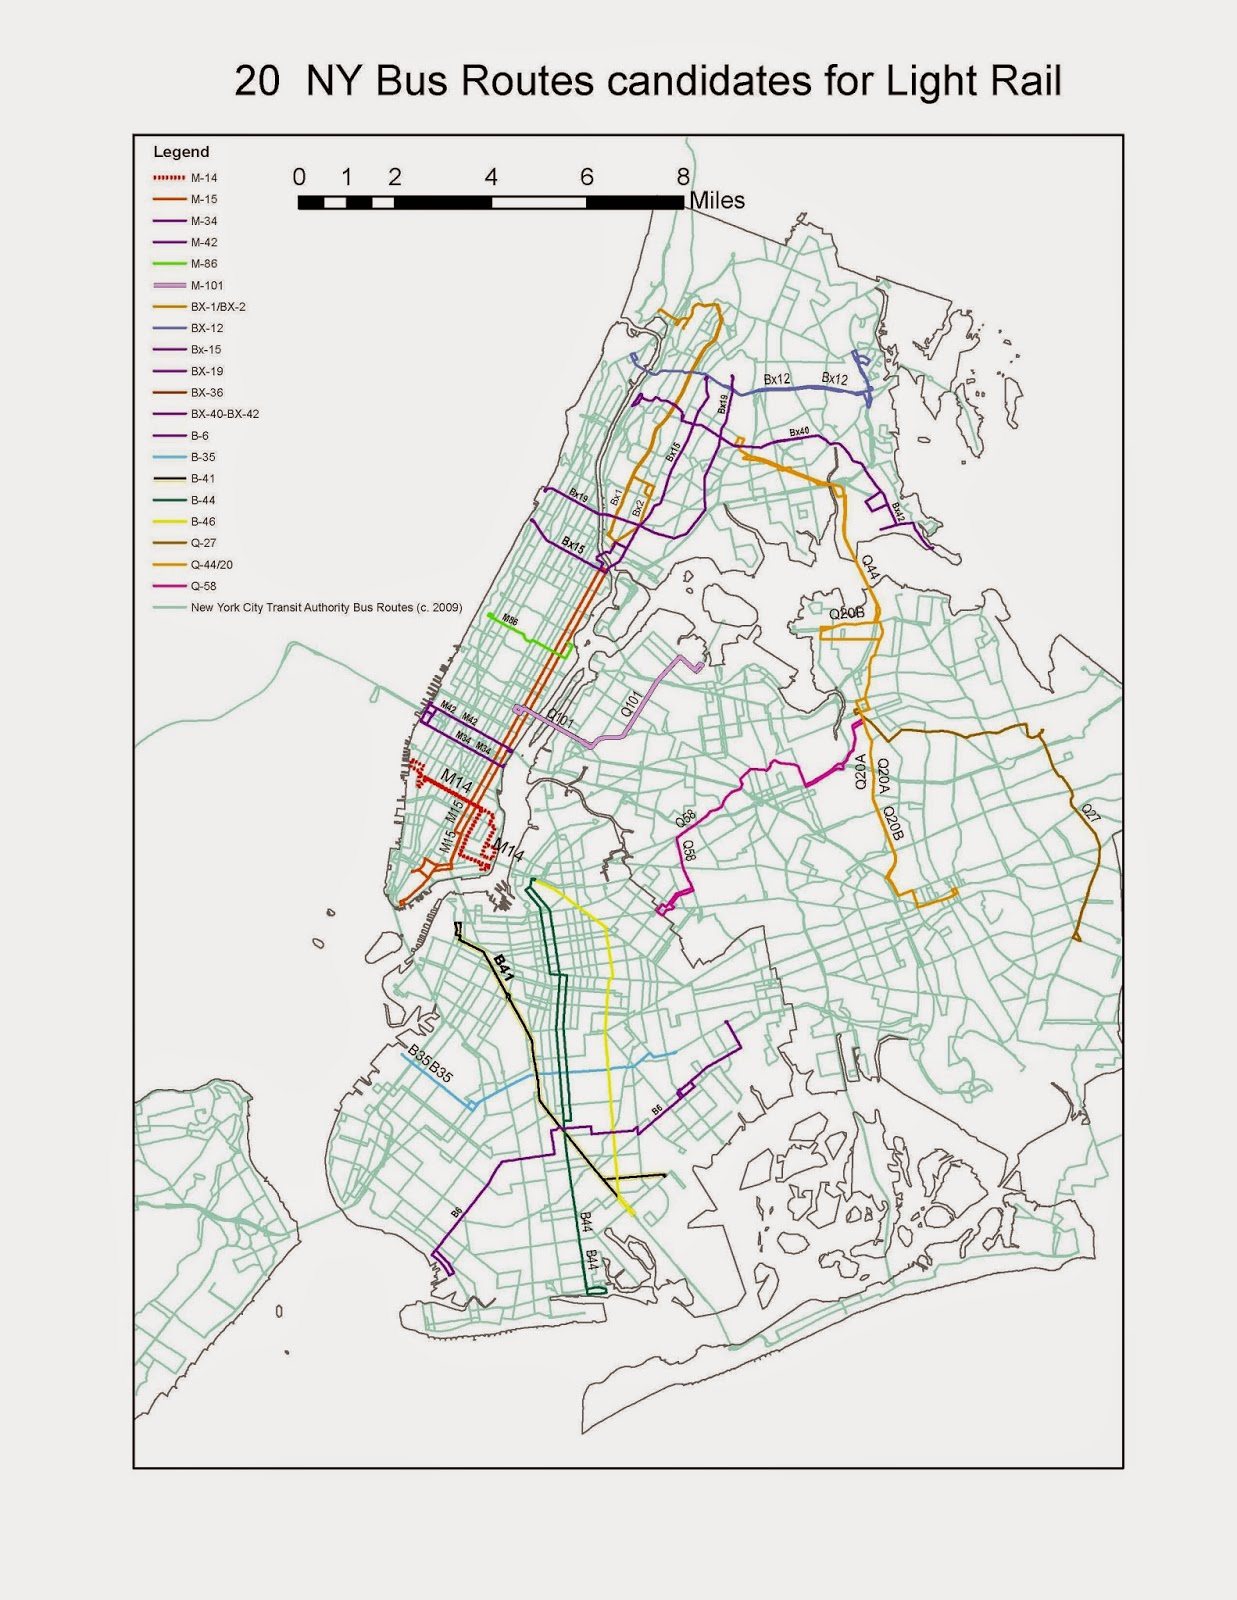 Streetcars and Spatial ysis: Twenty NYC Bus Routes are ... on